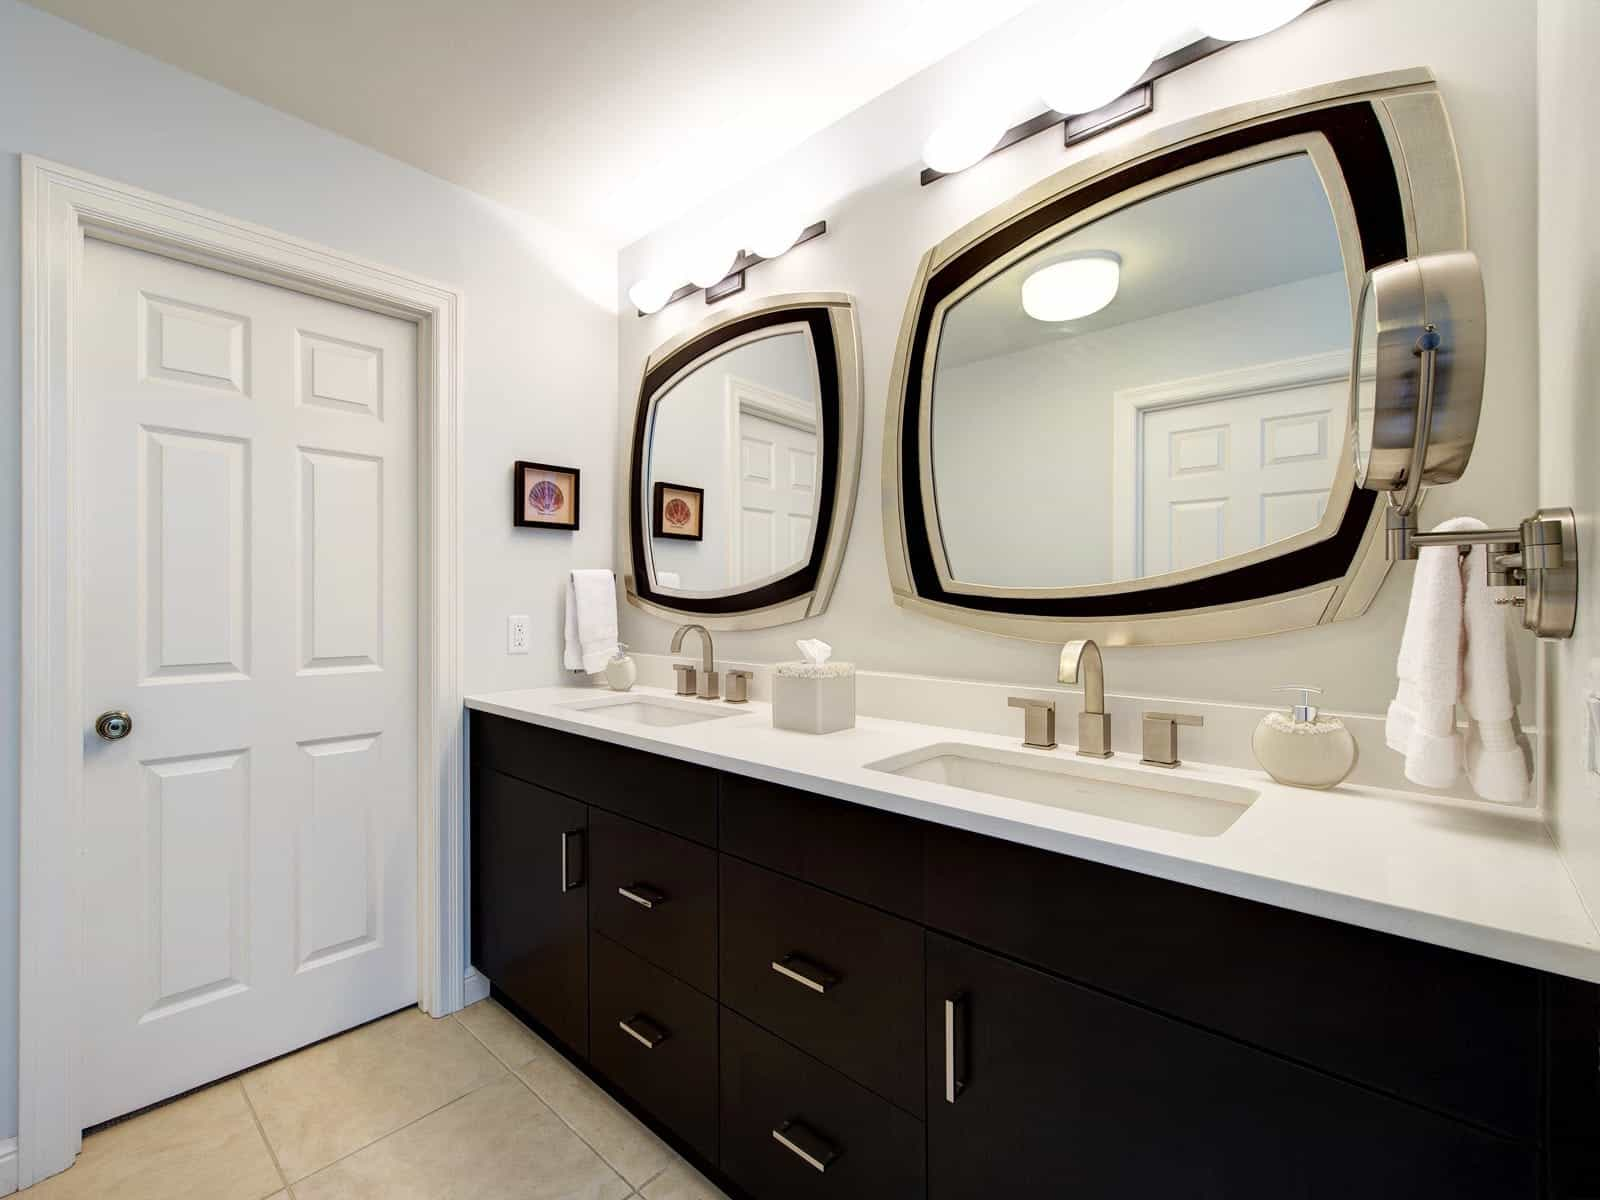 Classic Contemporary Bathroom With Dual Vanity And Framed Mirrors With Light (Image 6 of 20)